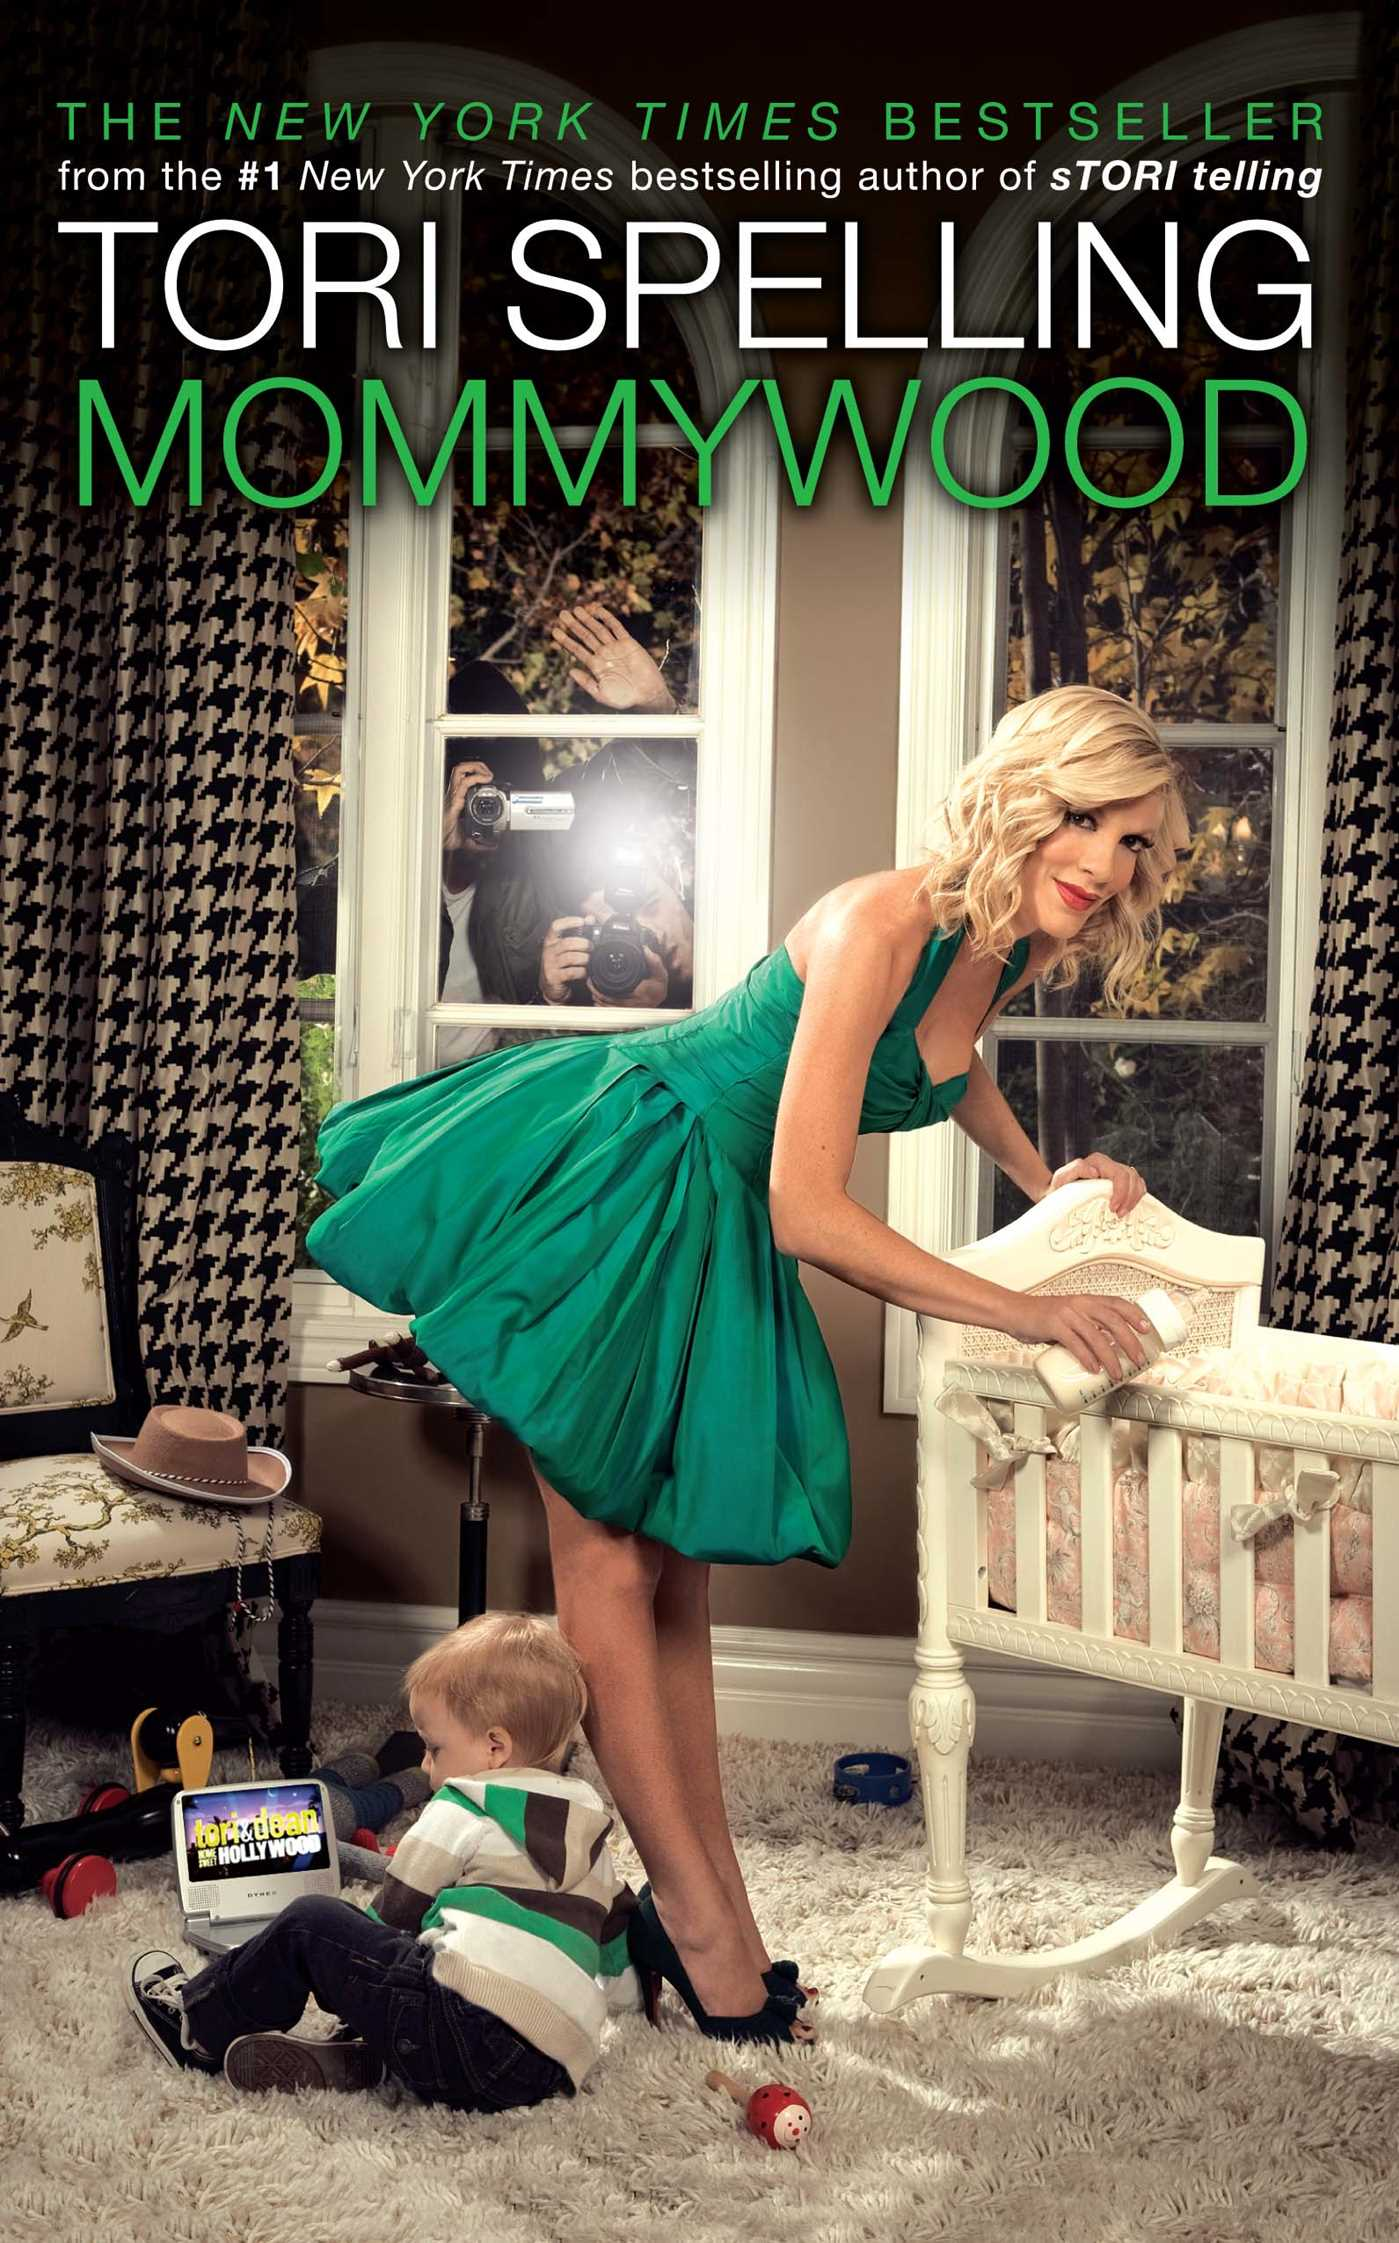 Mommywood-9781416599111_hr